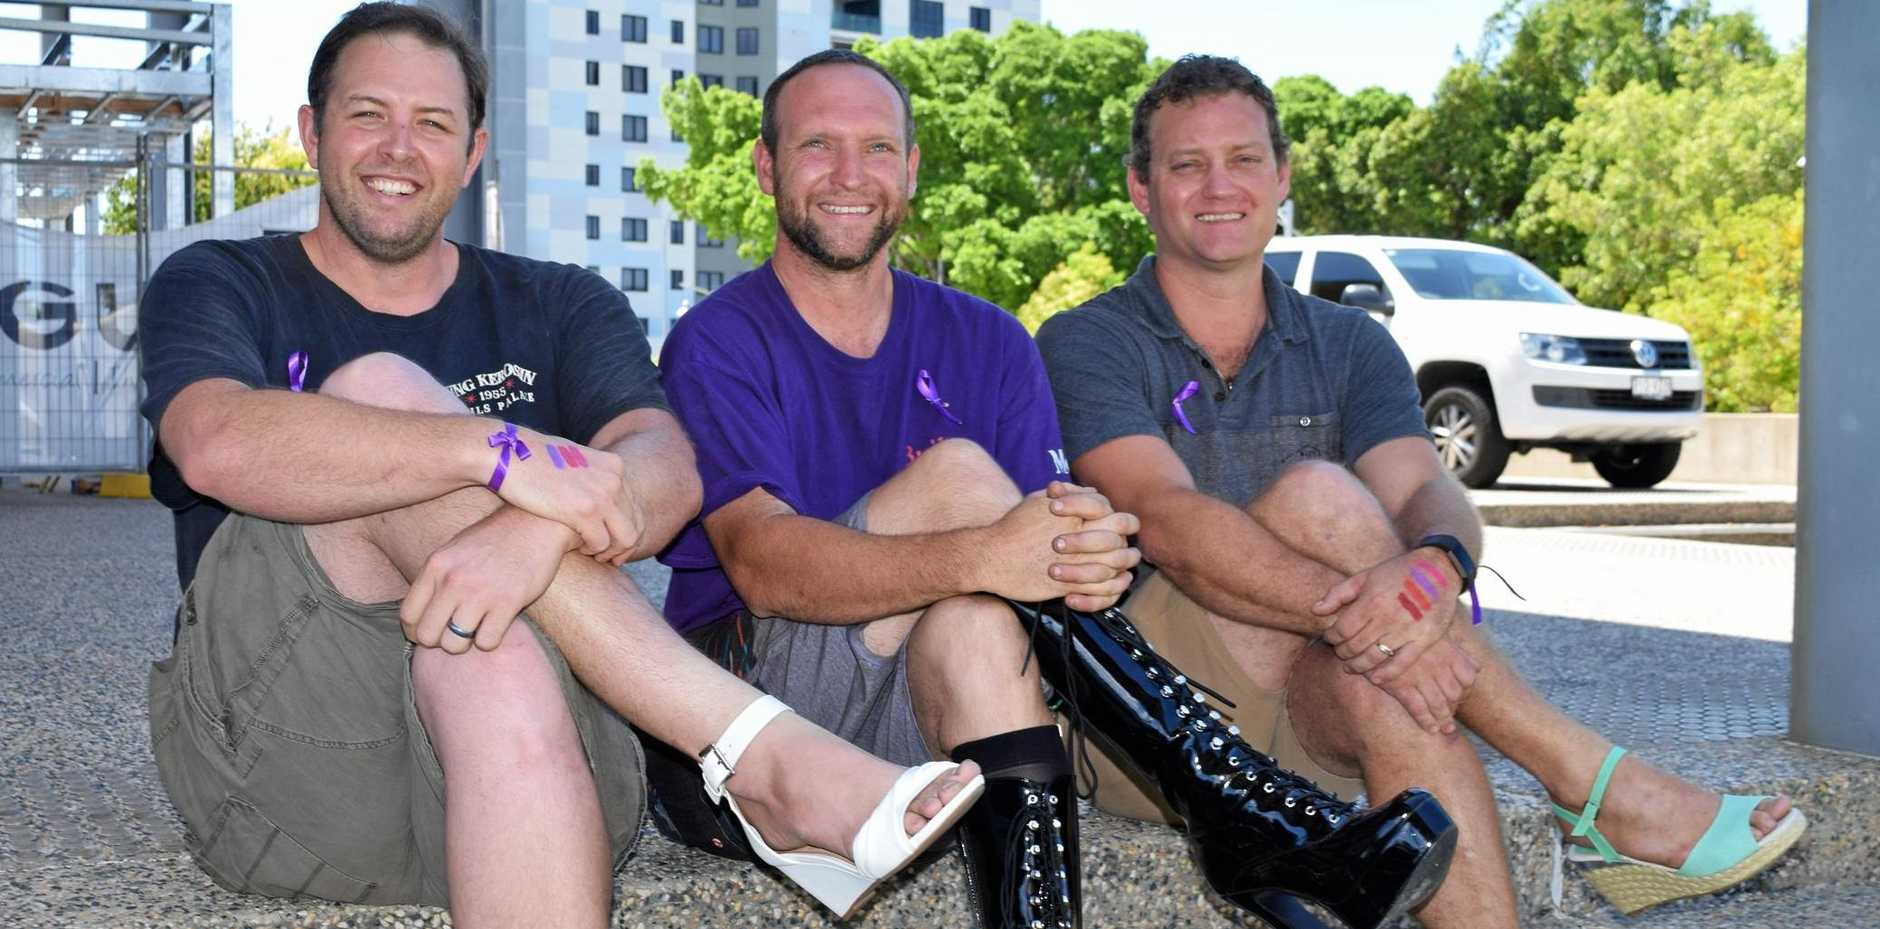 Tim Vaughan, Damien Gately and Jonno Drayton donned high heels to support domestic violence victims.